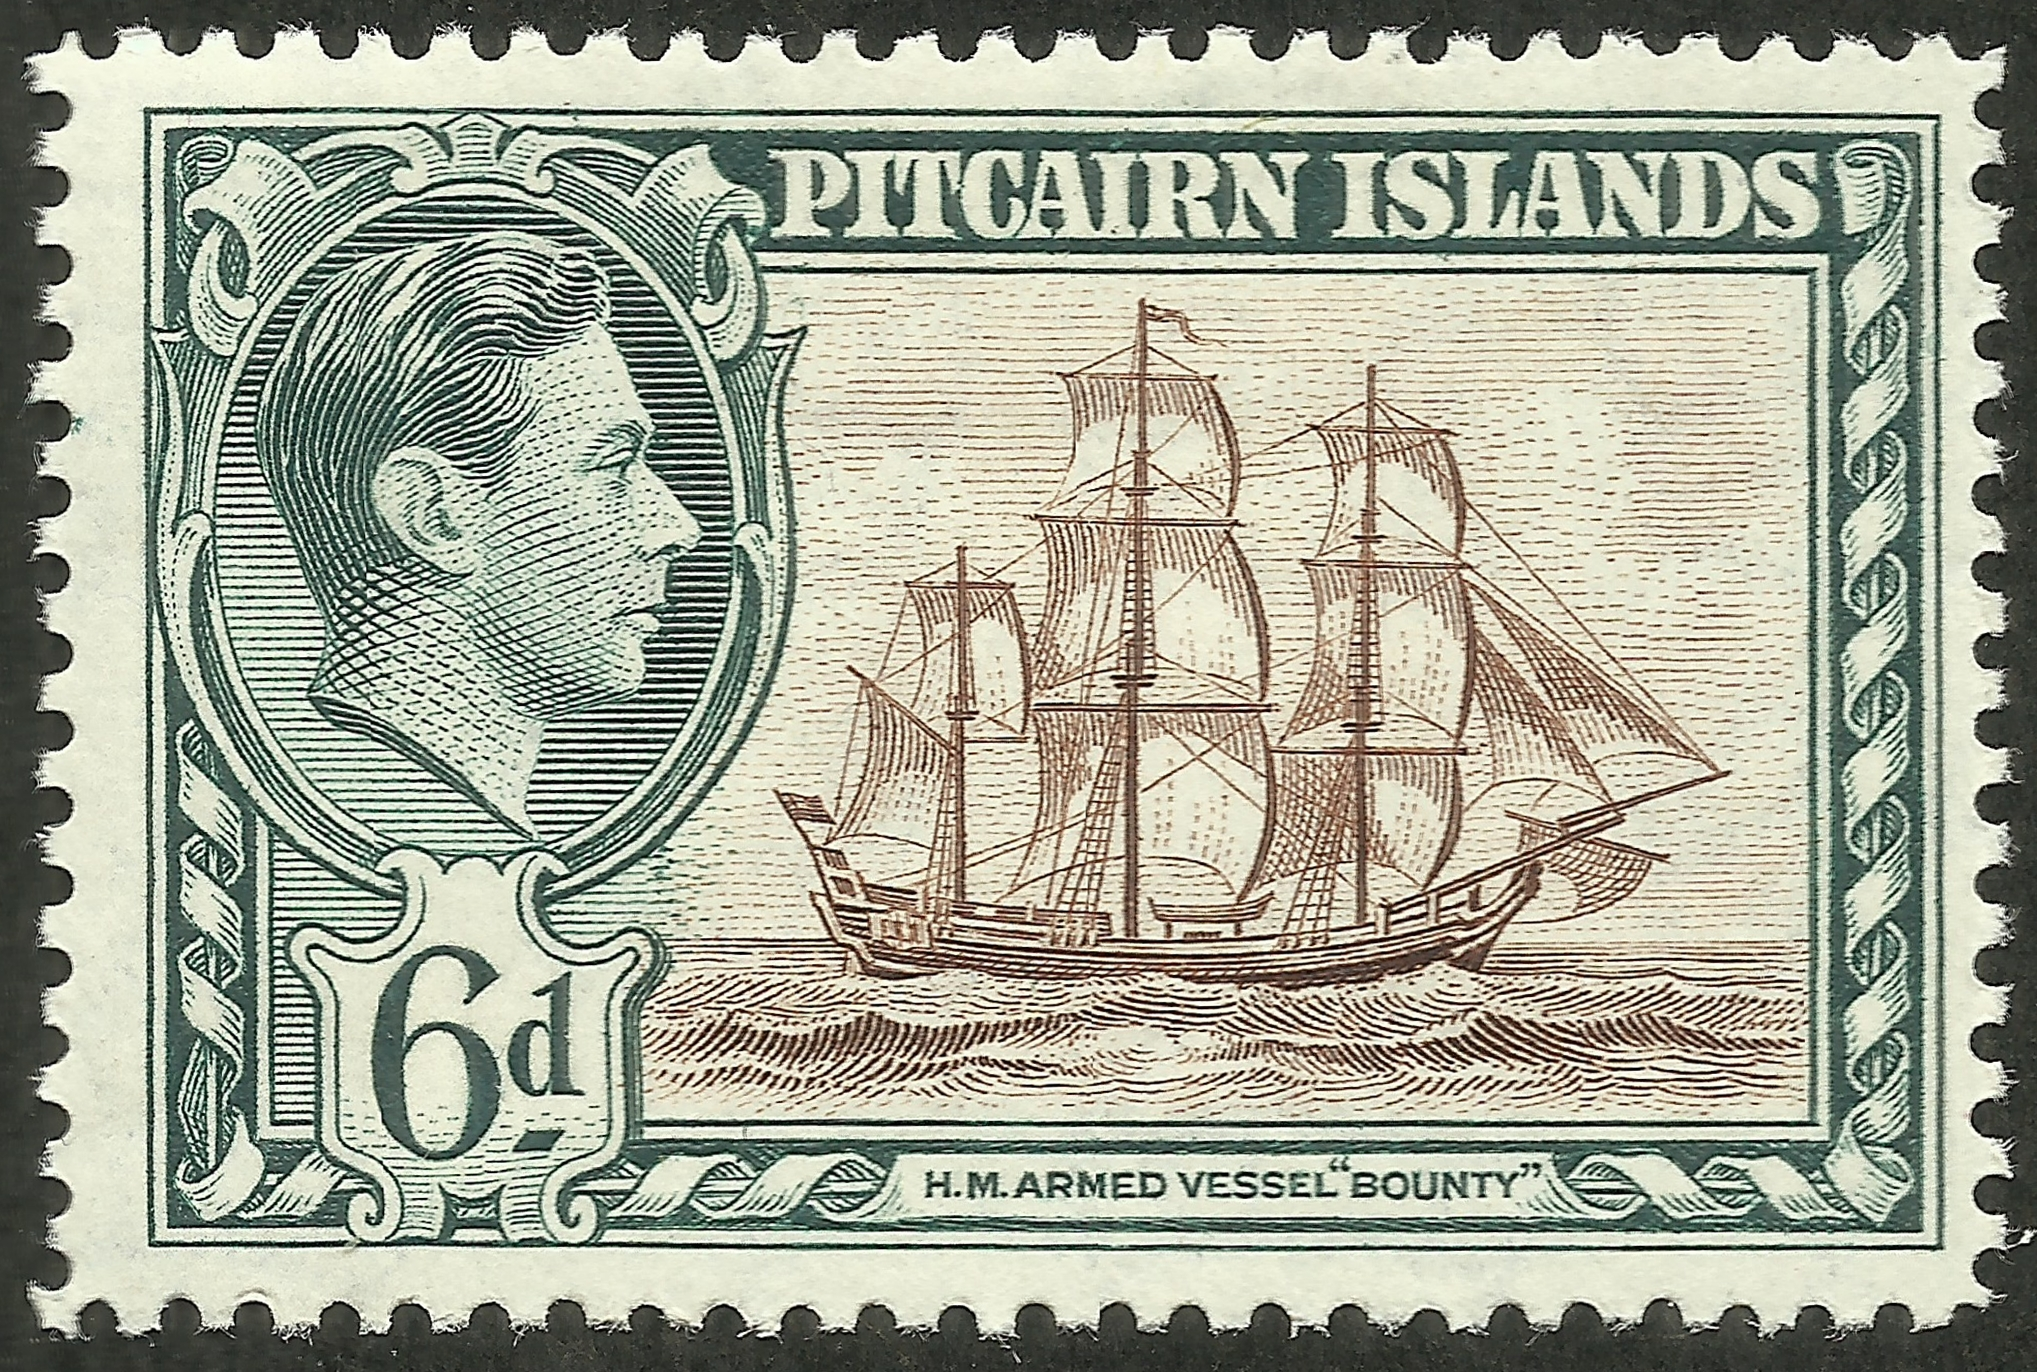 Pitcairn Islands #6 (1940)